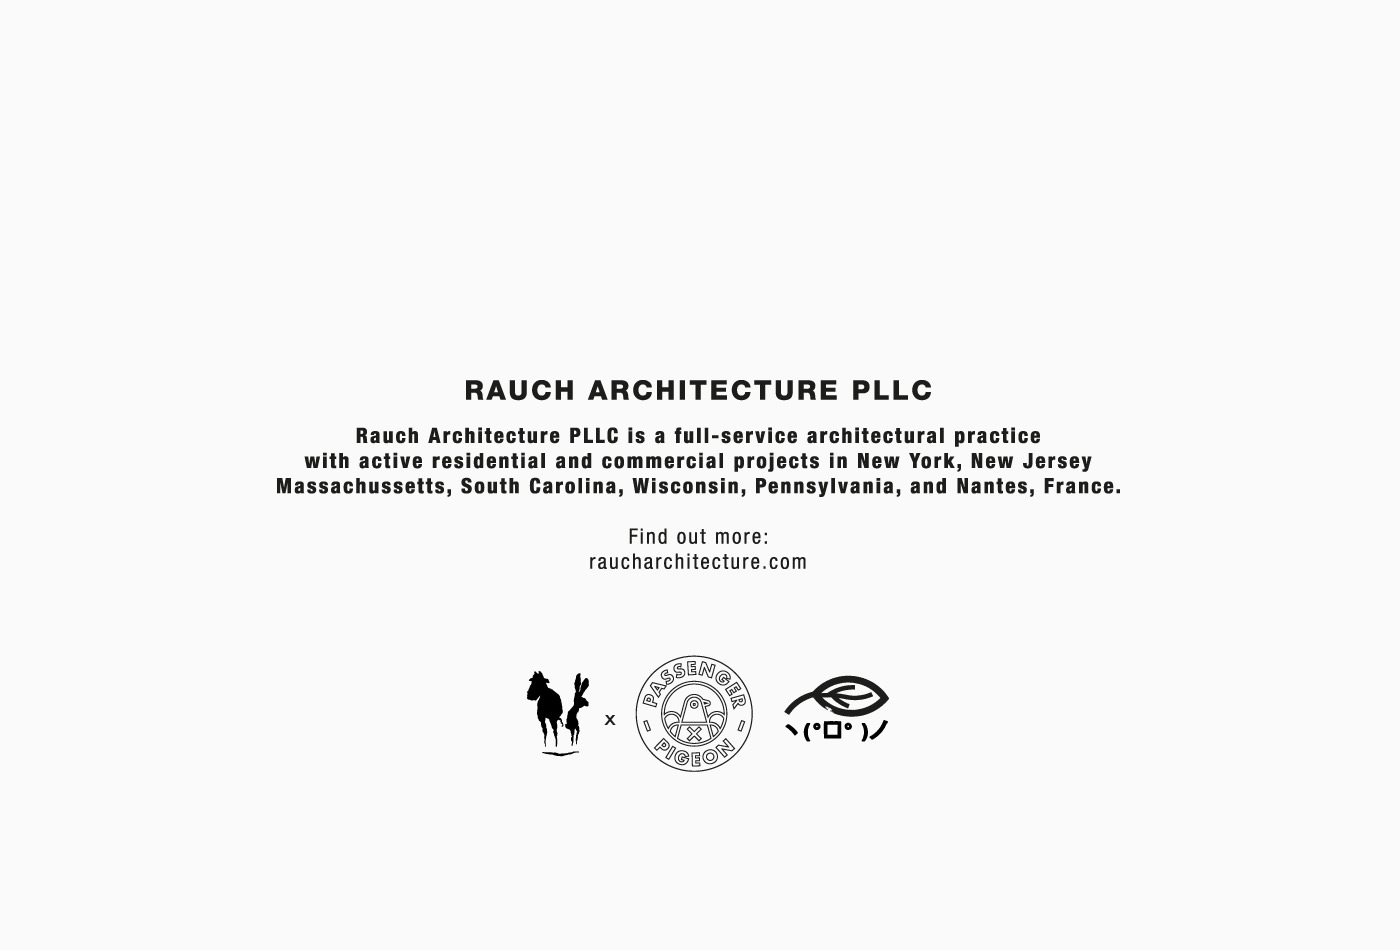 raucharchitecture-rauch-architecture-pllc-new-york-new-jersey-nantes-knoxville-passengerpigeonx-ppx-branding-vacalienbres